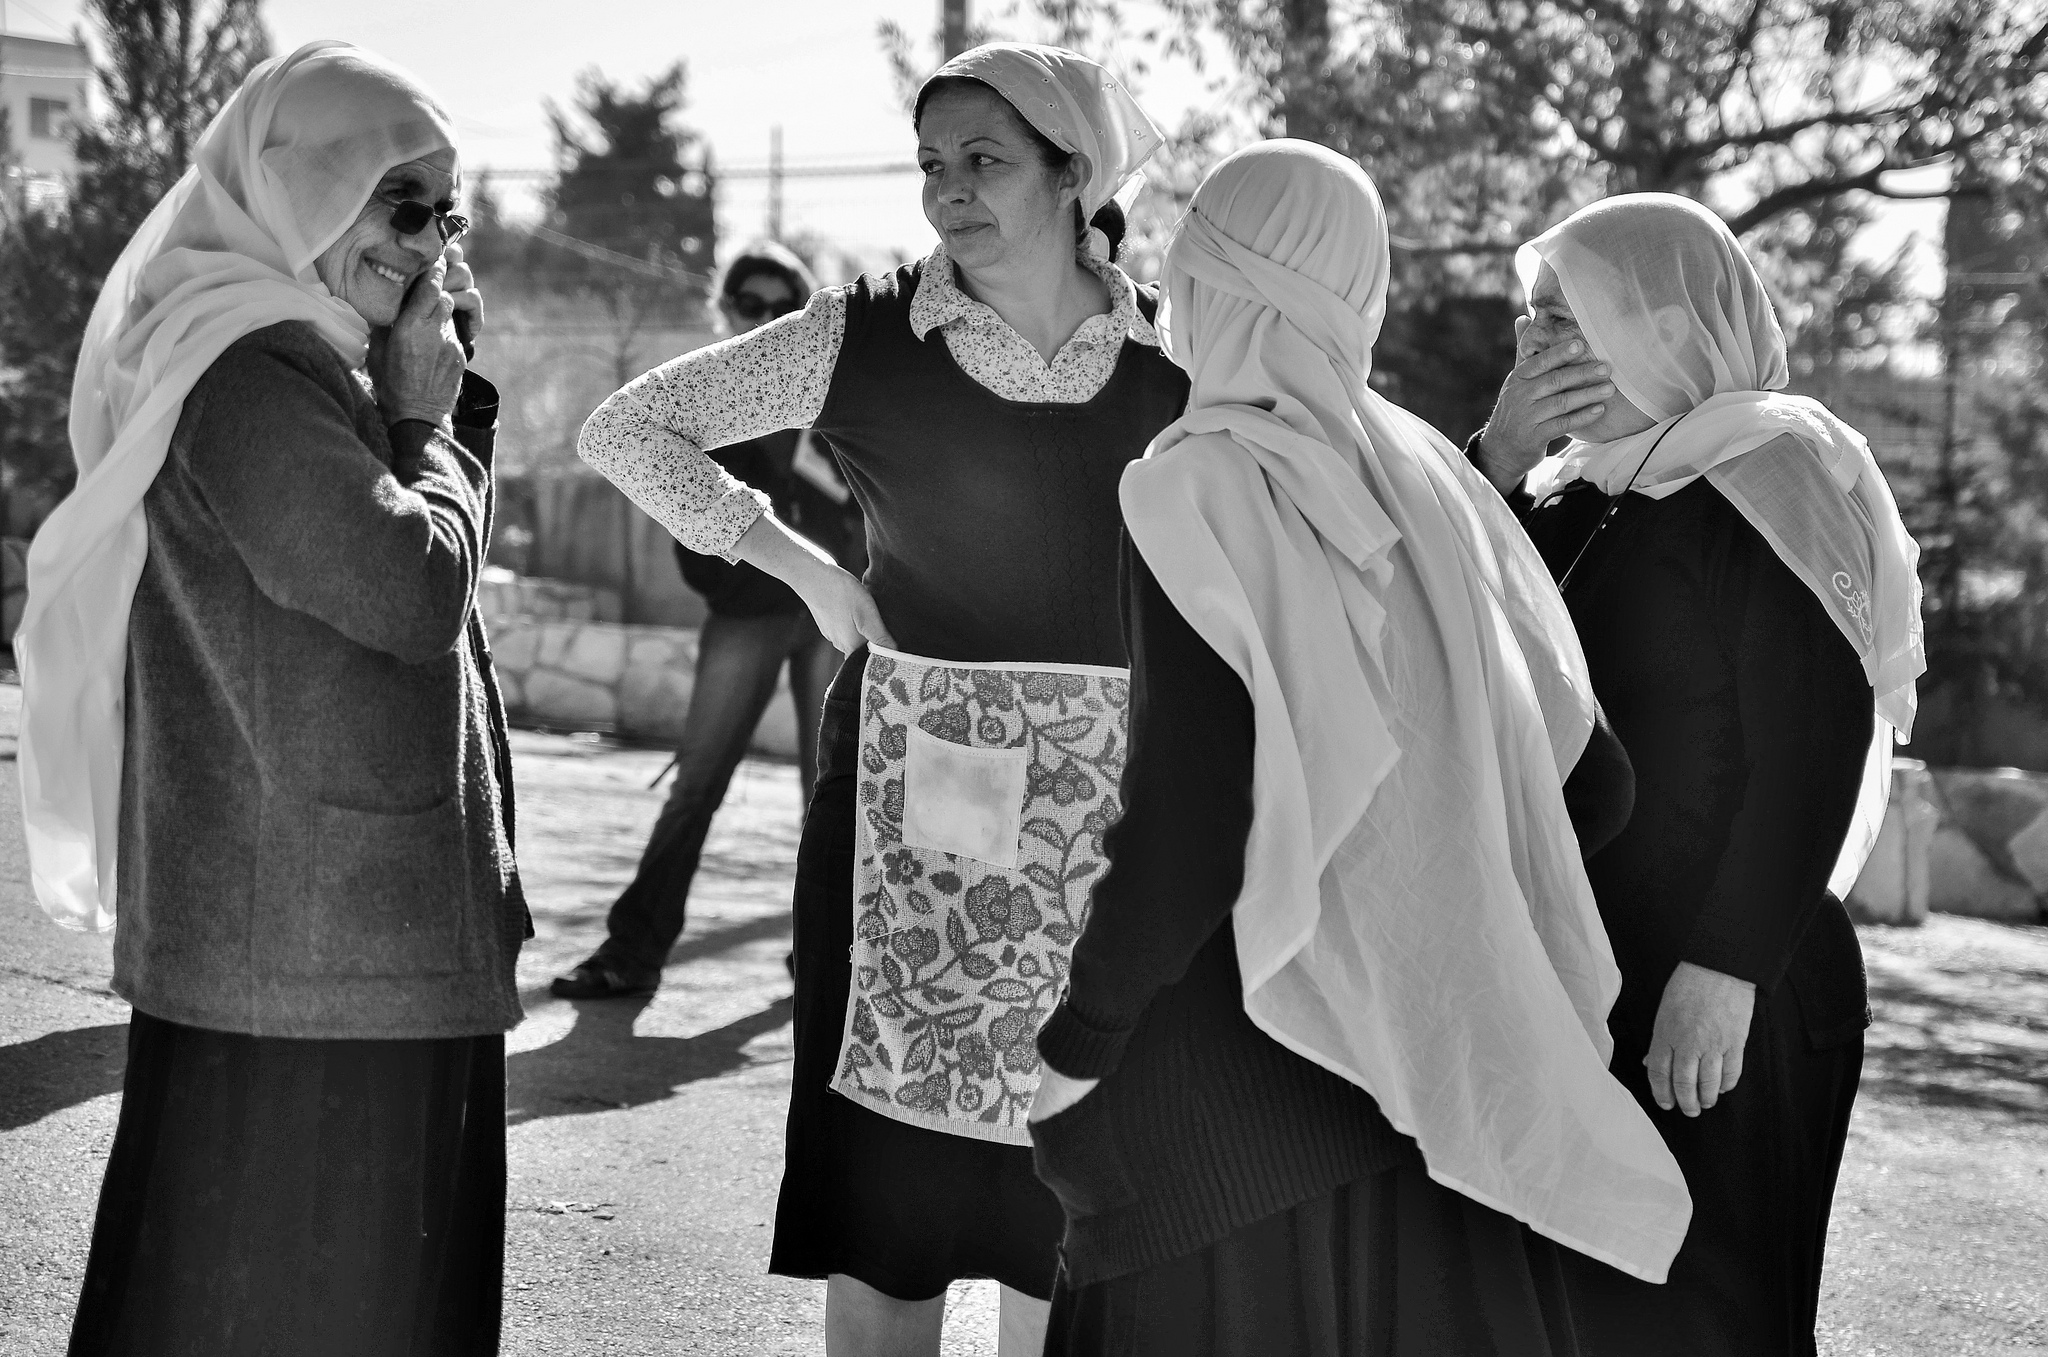 Growing number of Druze believers in Syria